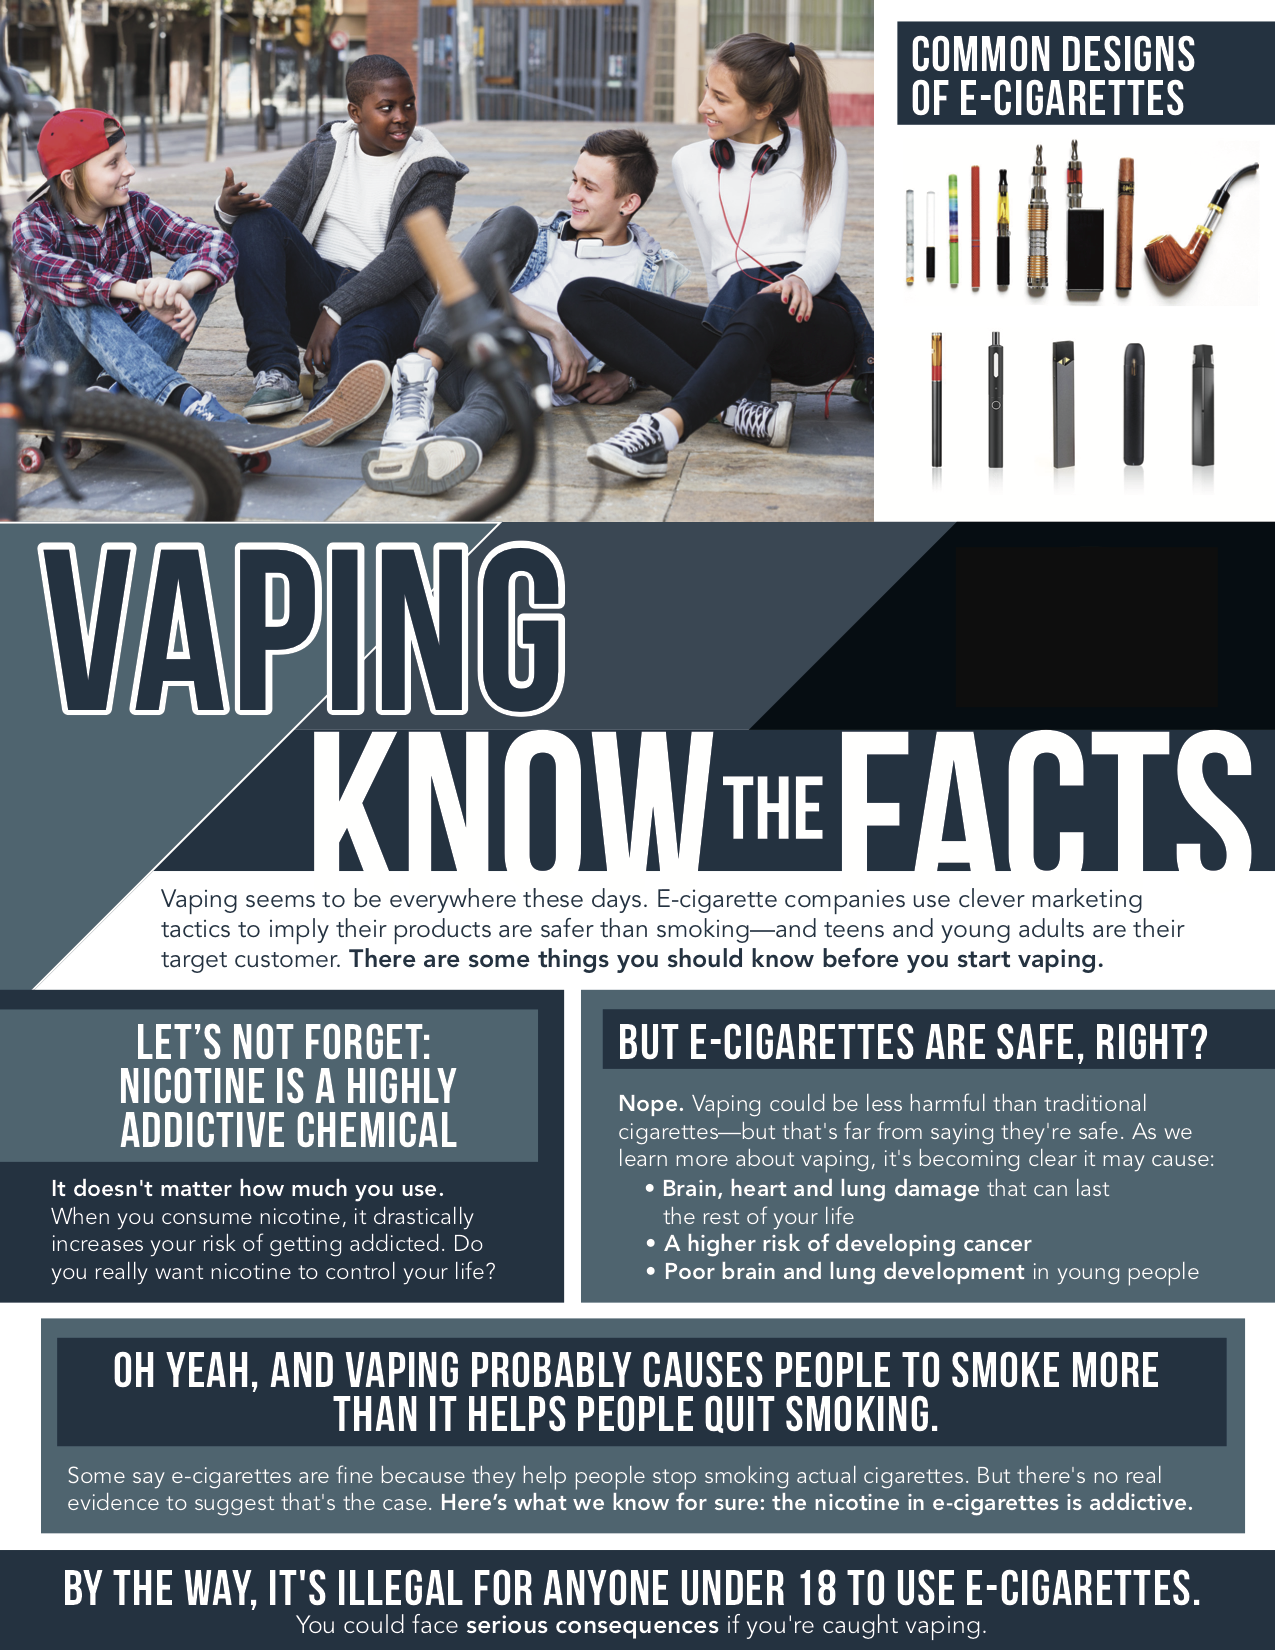 vaping facts flyer